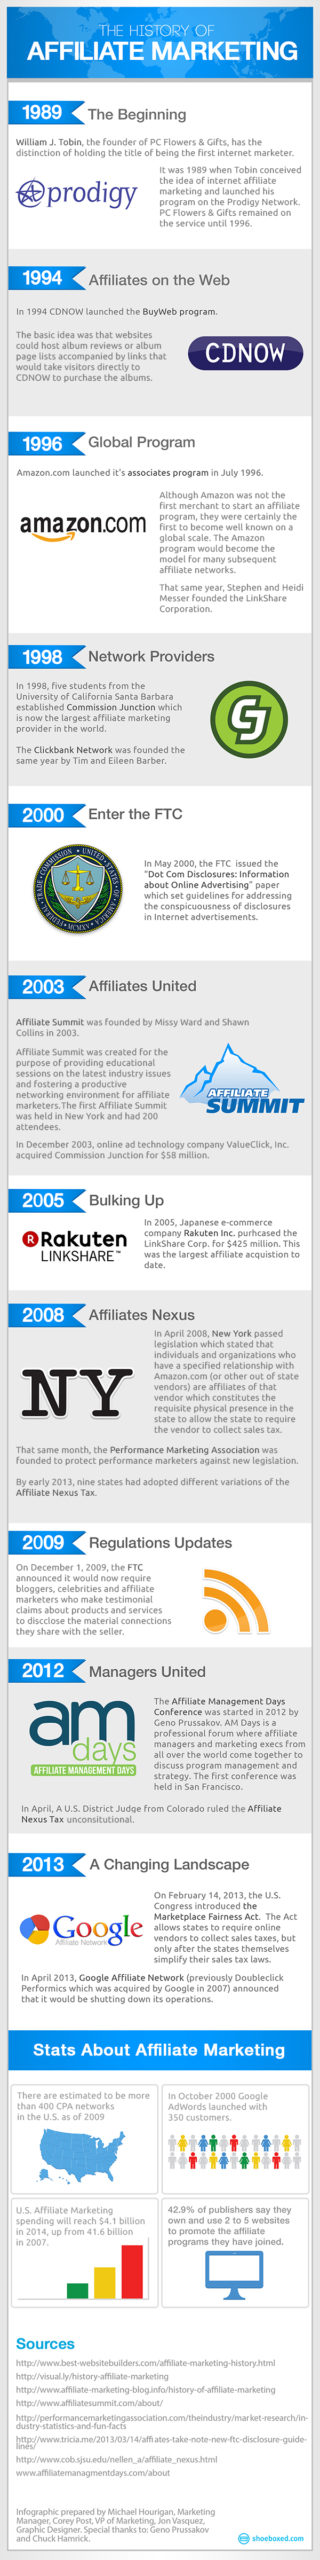 the history of affiliate marketing 1 scaled